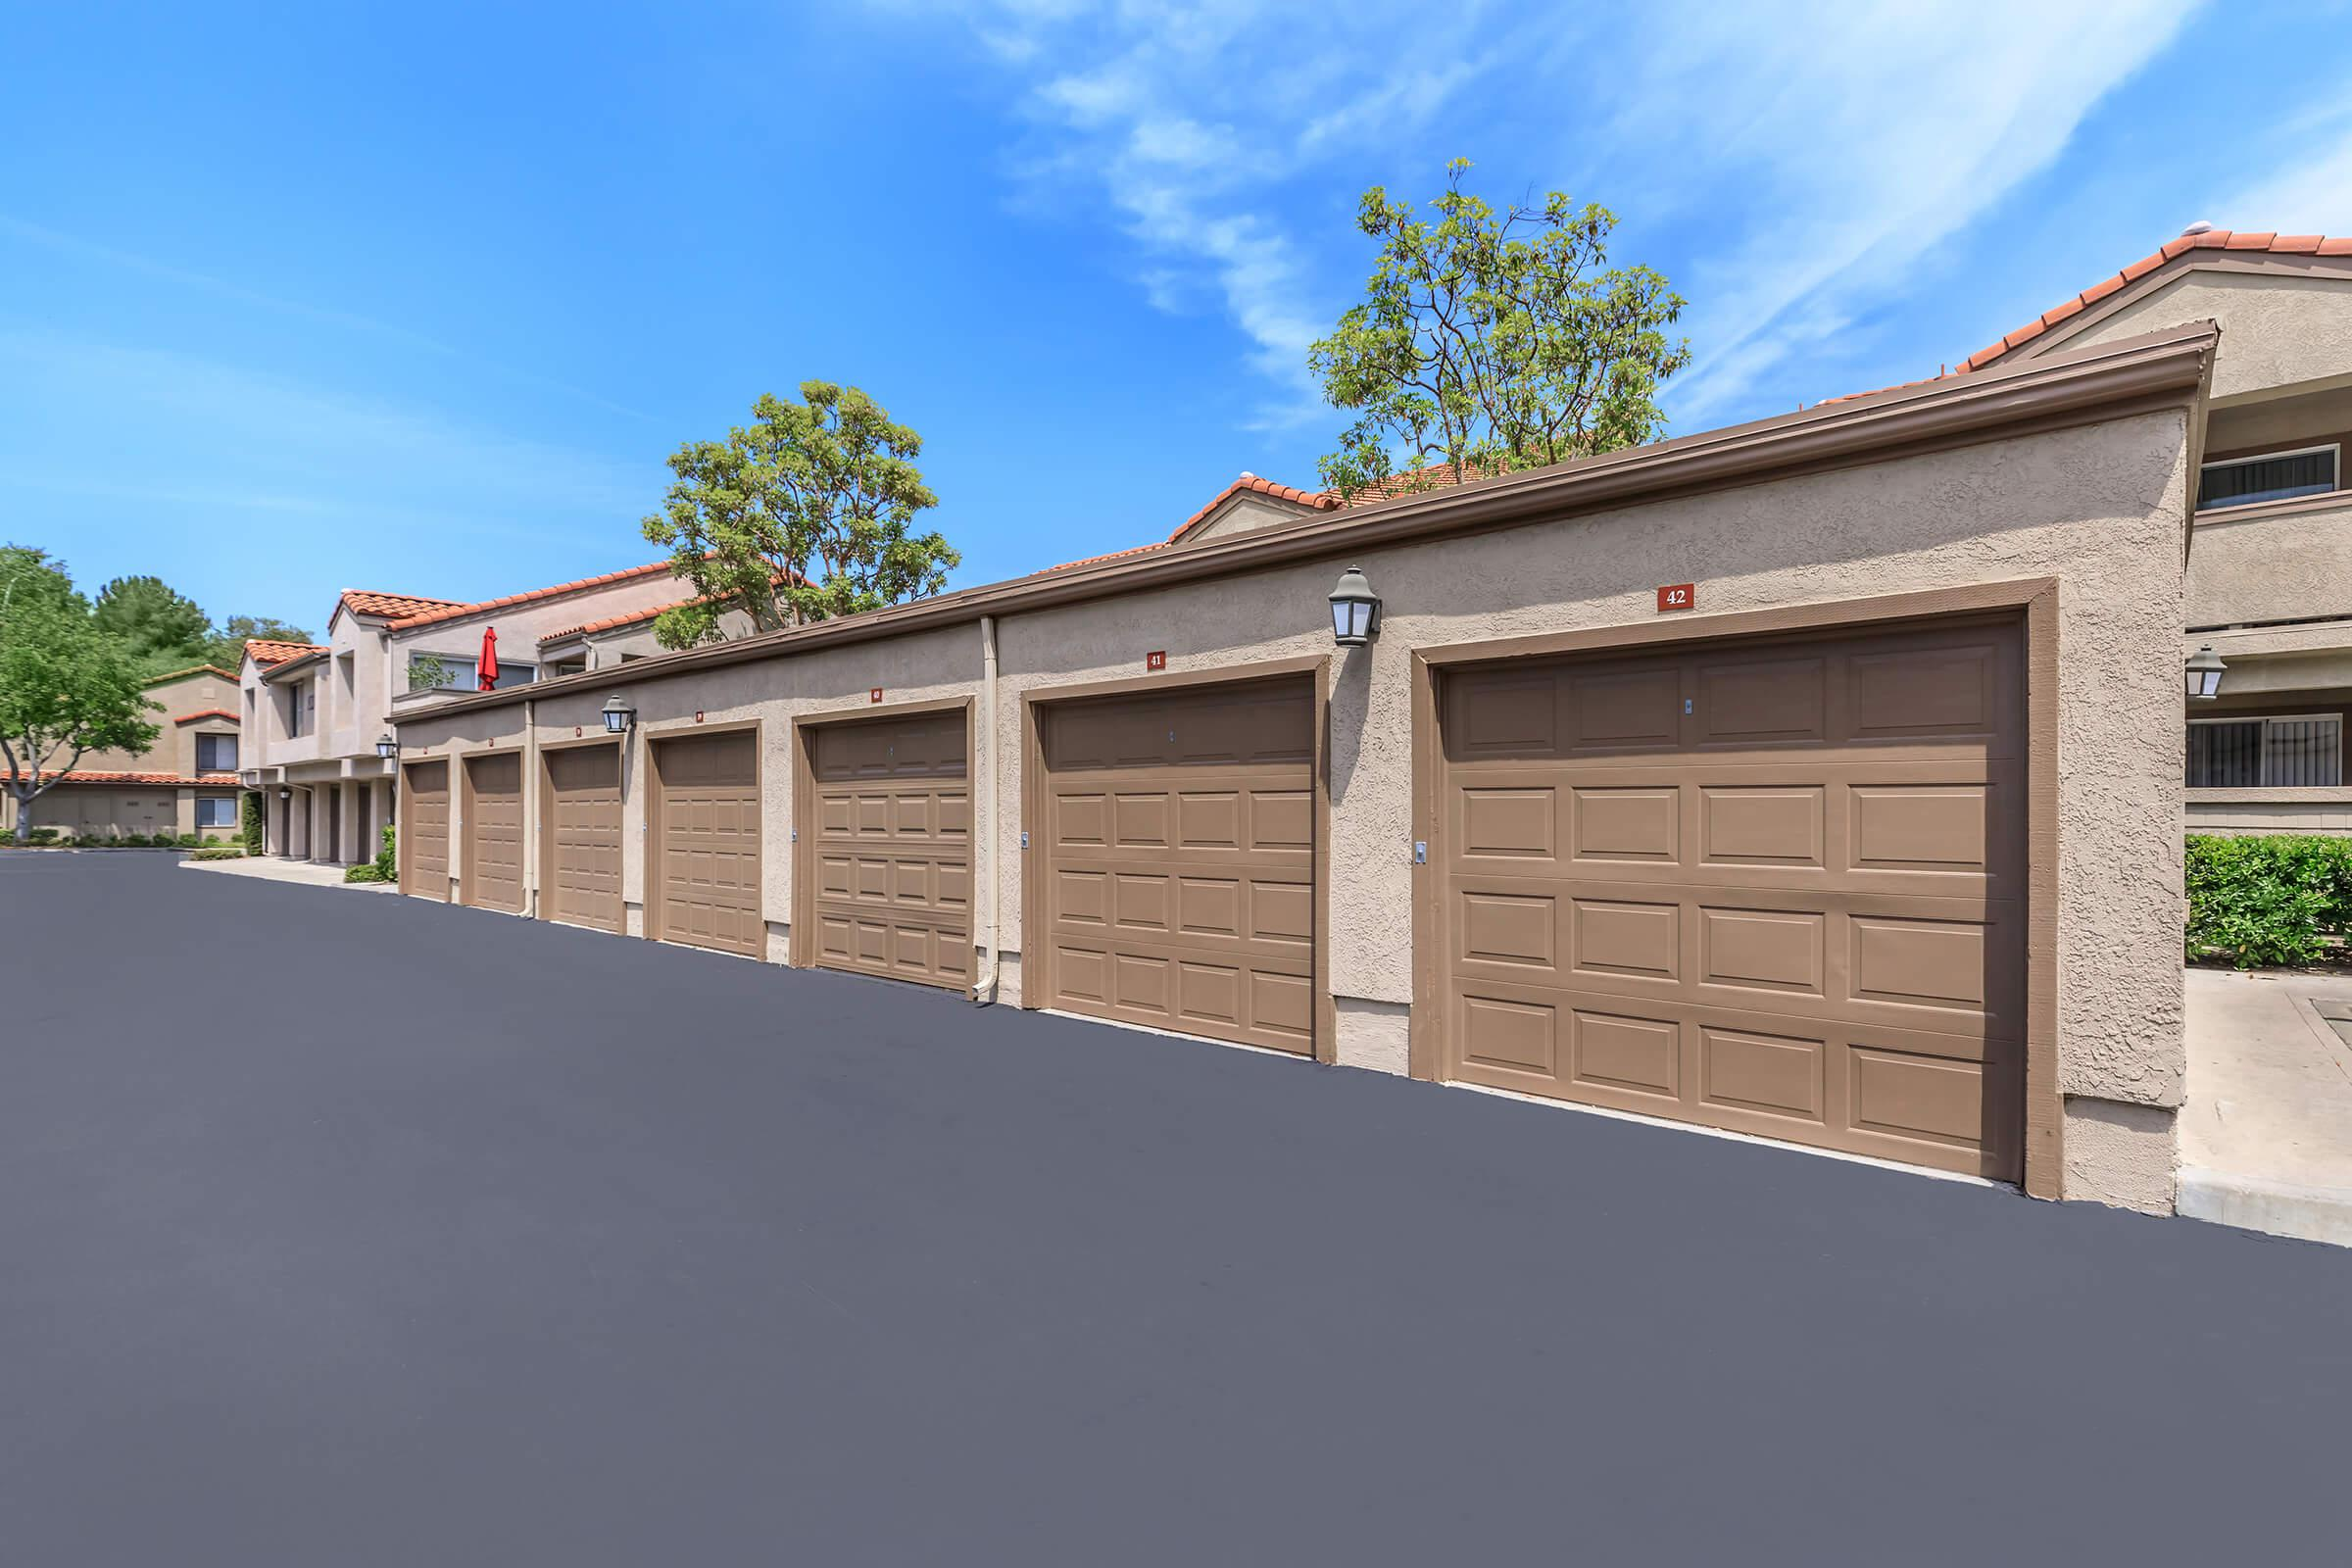 Sycamore Canyon Apartments garages